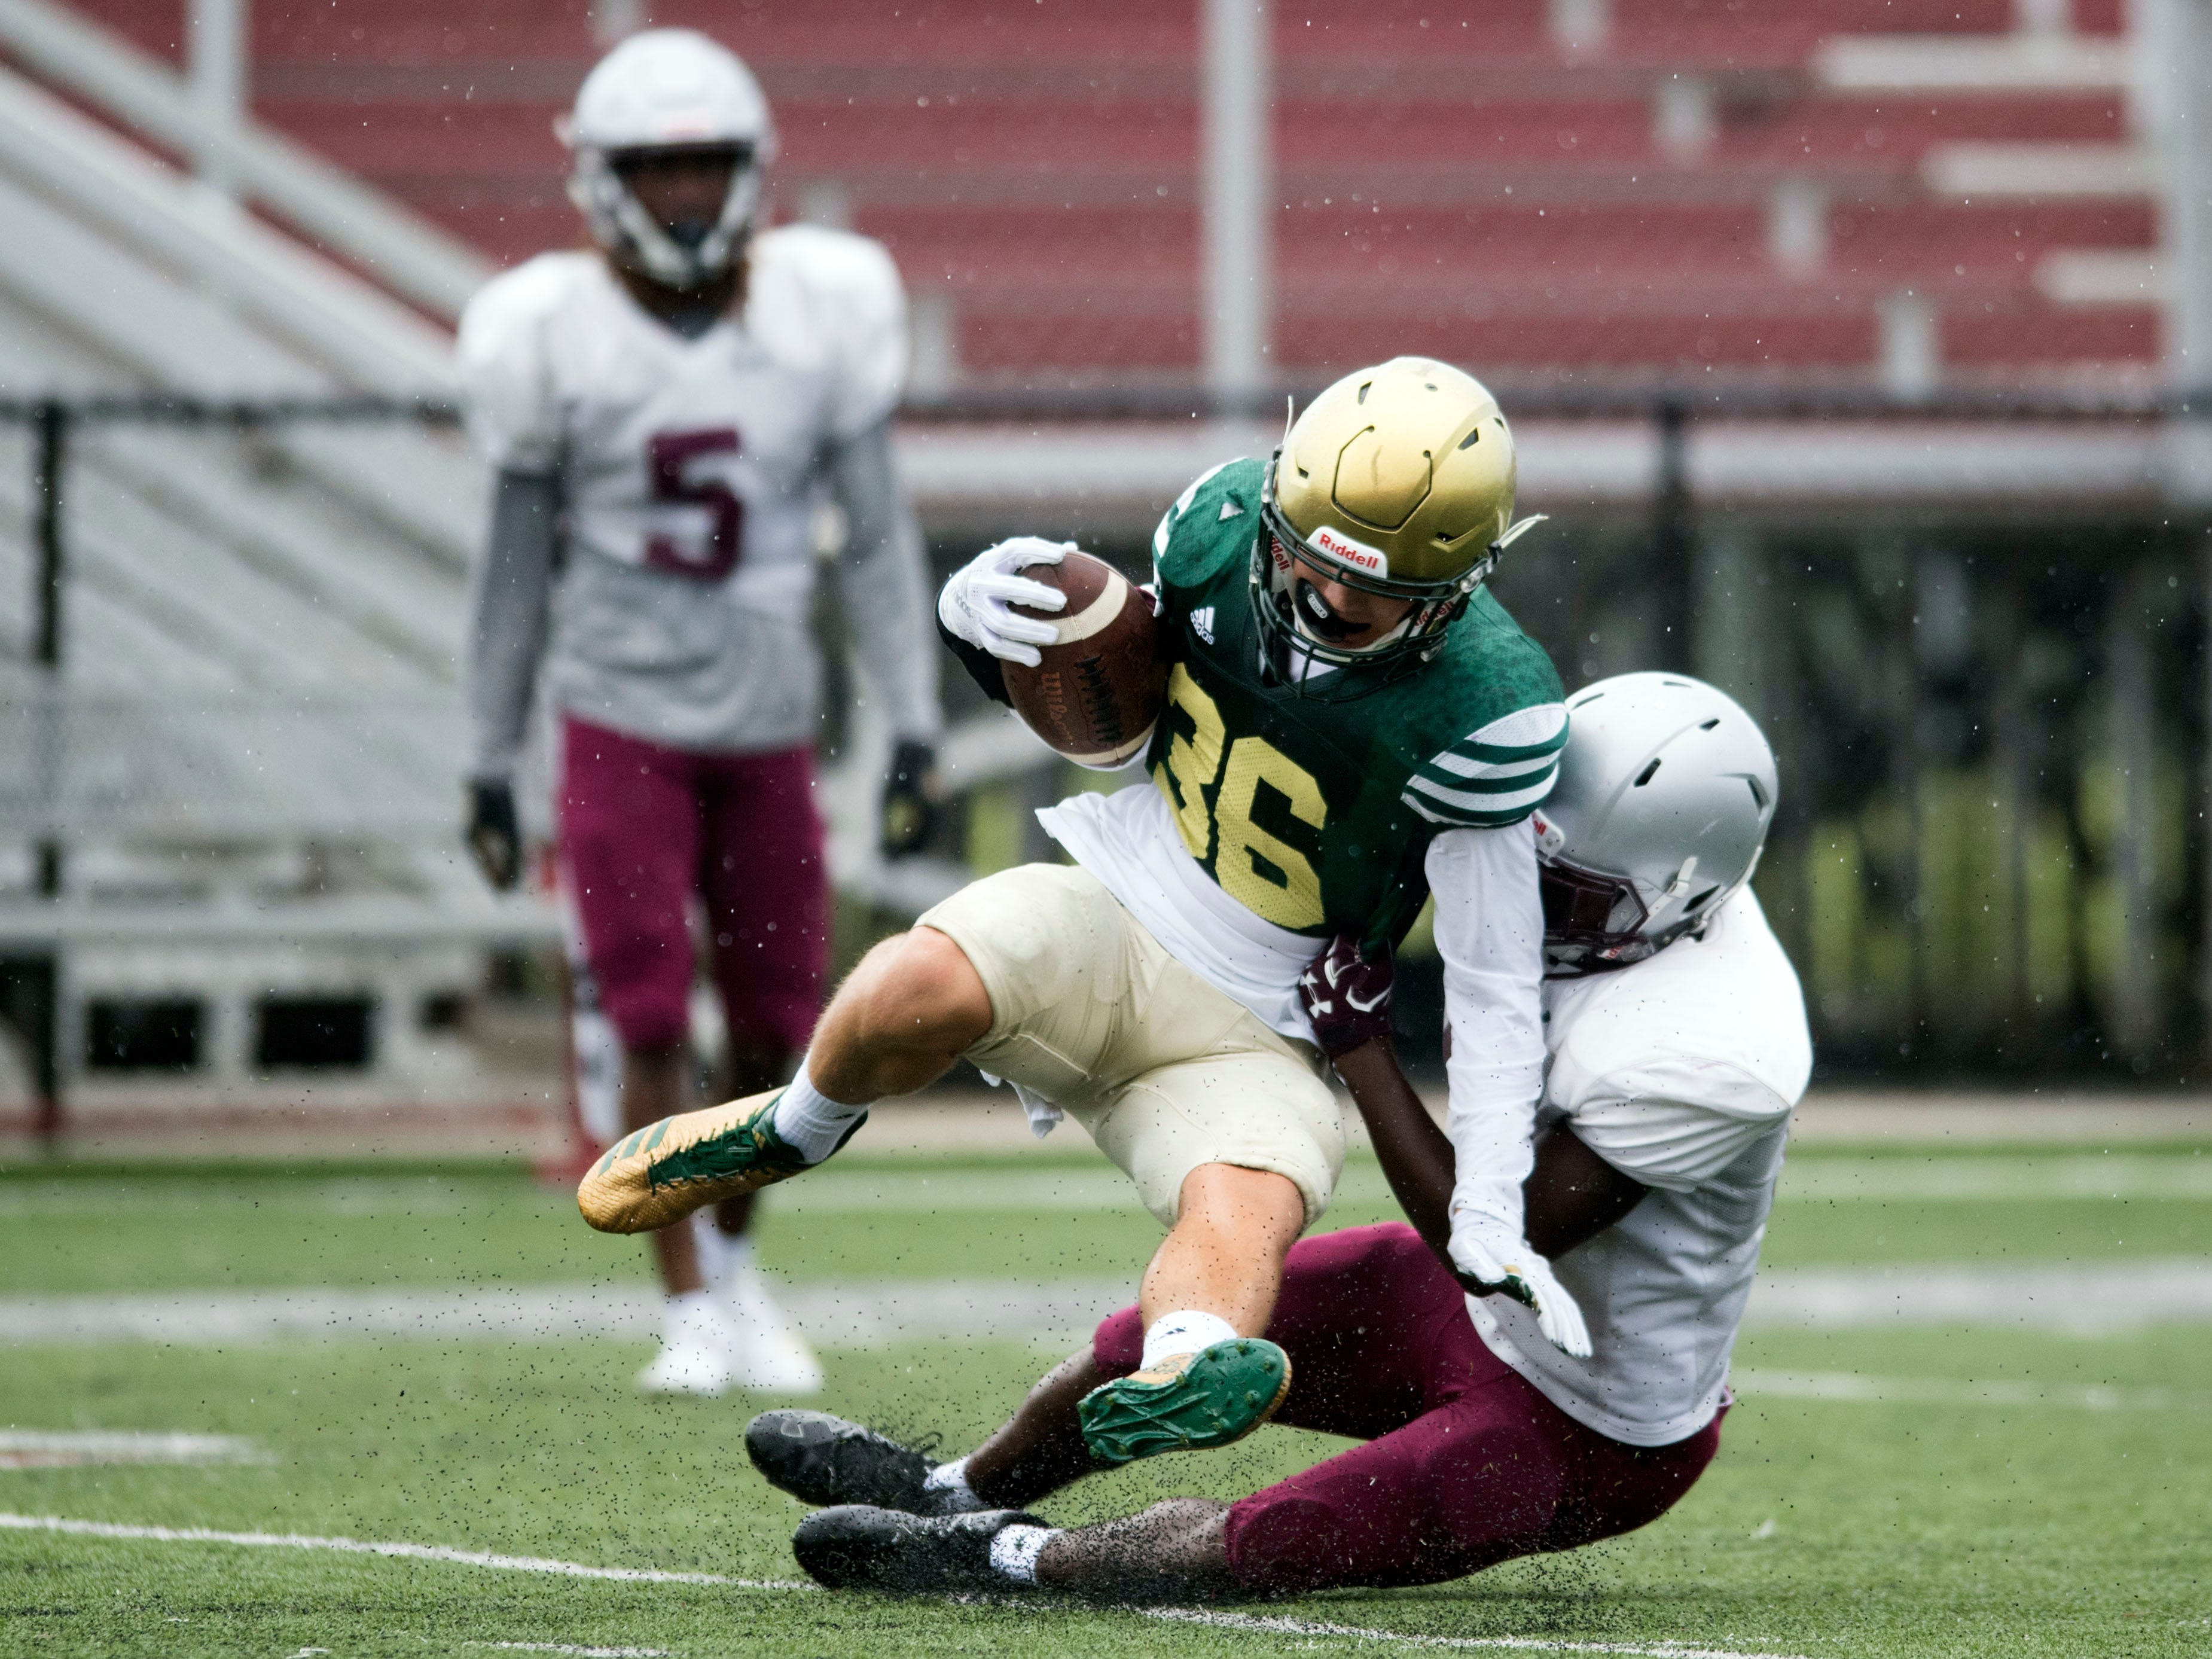 Knoxville Catholic's Zachary Shannon (36) is tackled by Alcoa's Isaiah Bryant (16) during a football scrimmage on Tuesday, July 31, 2018.